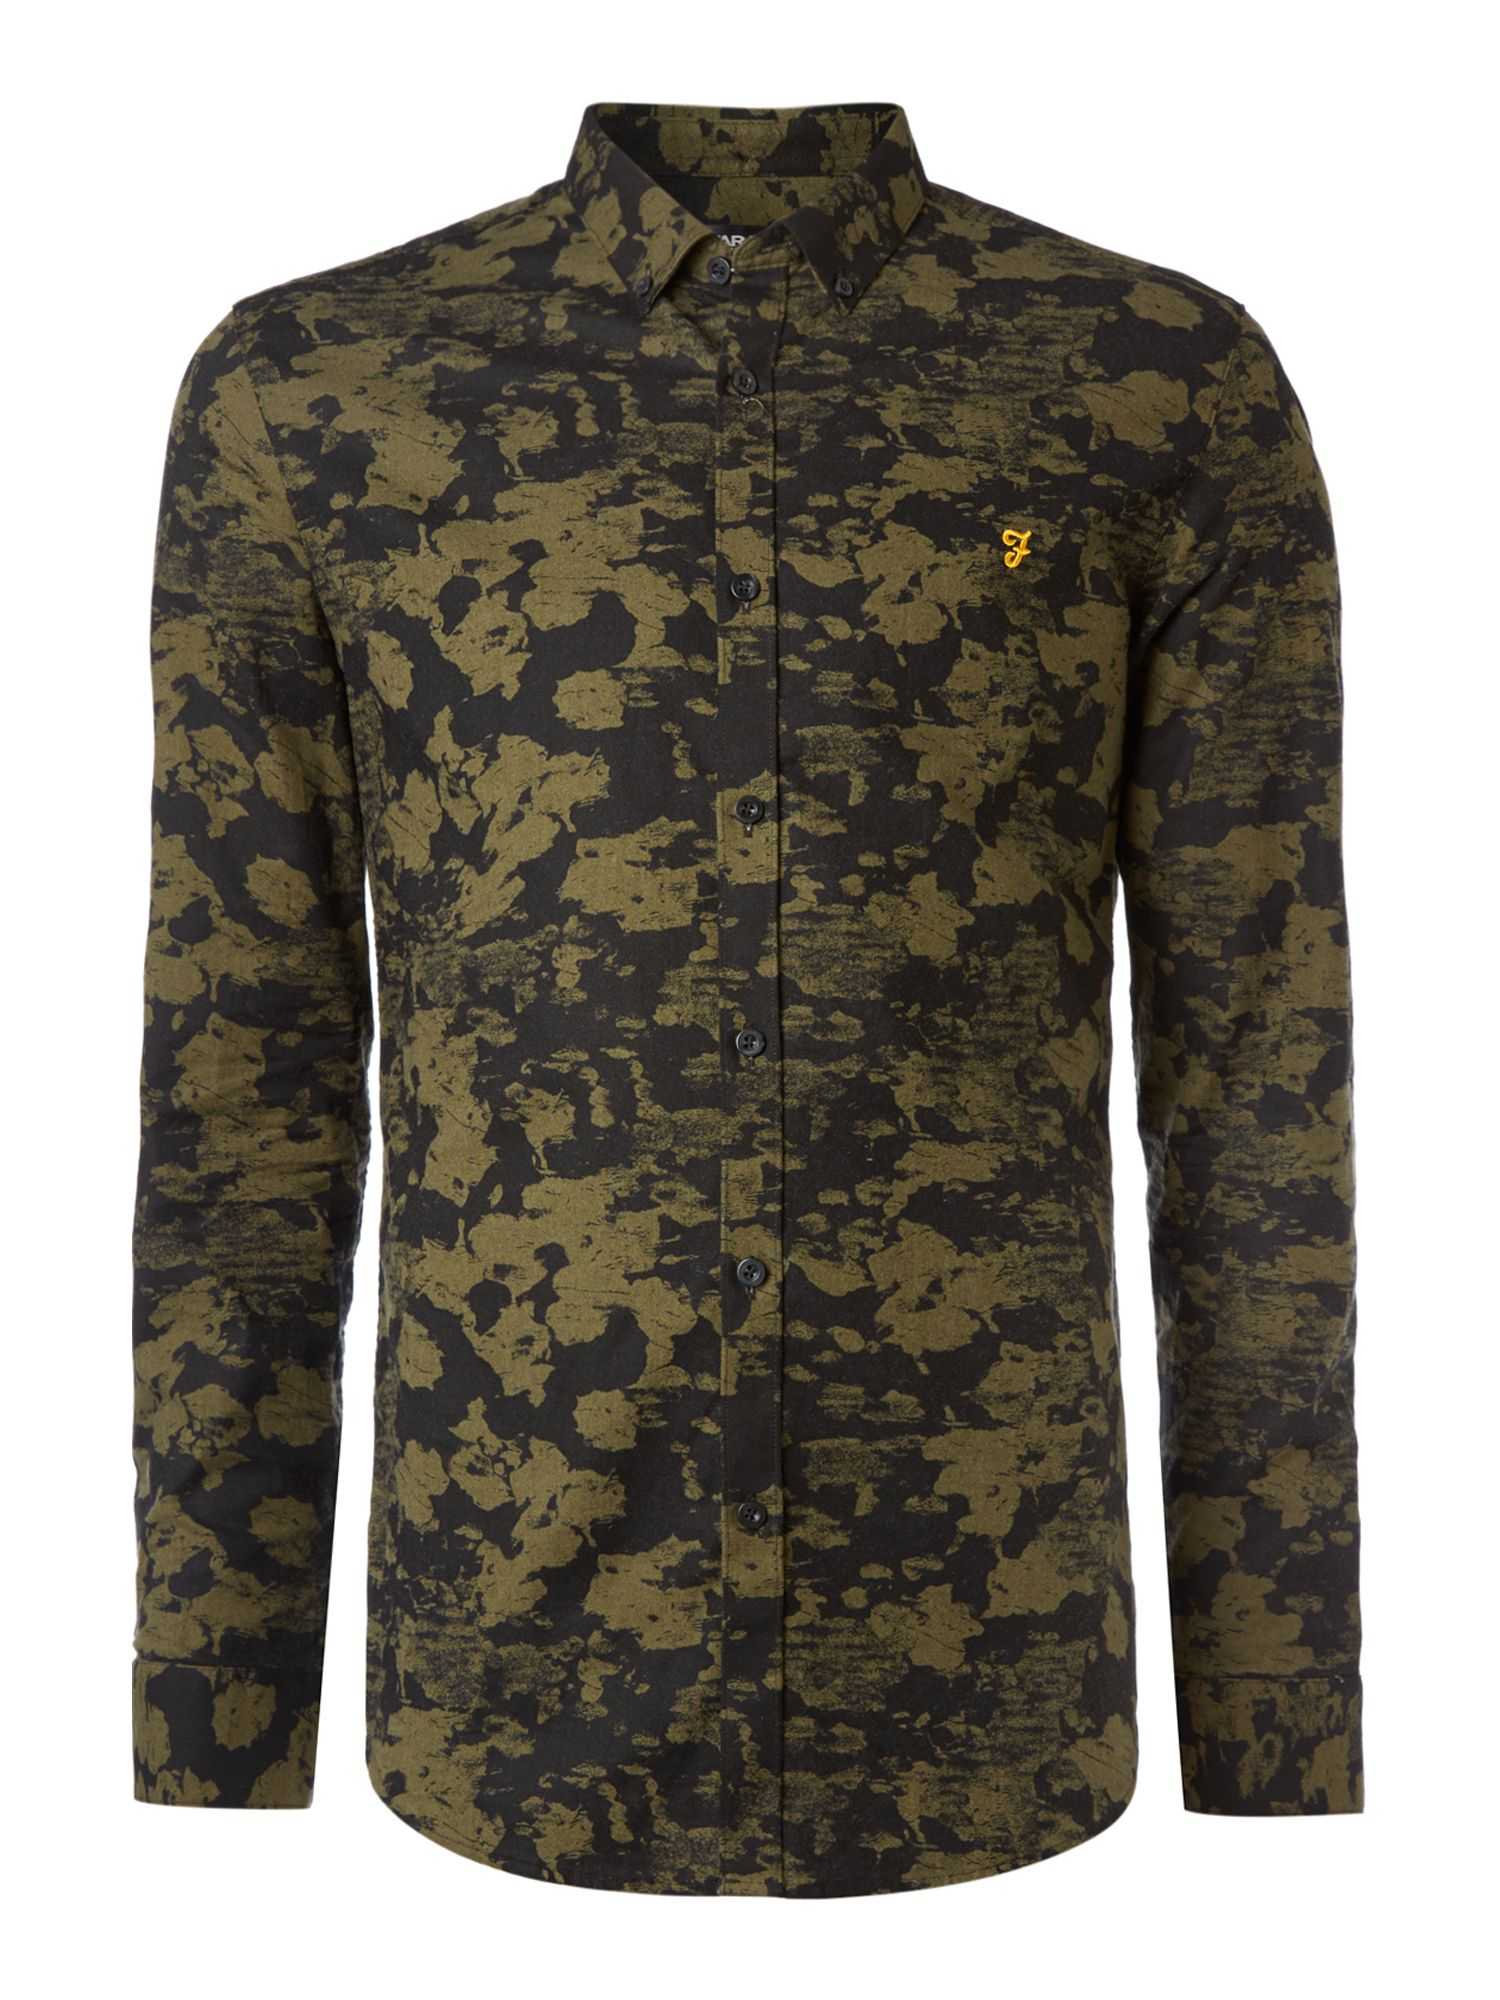 Myles paint print long sleeve shirt